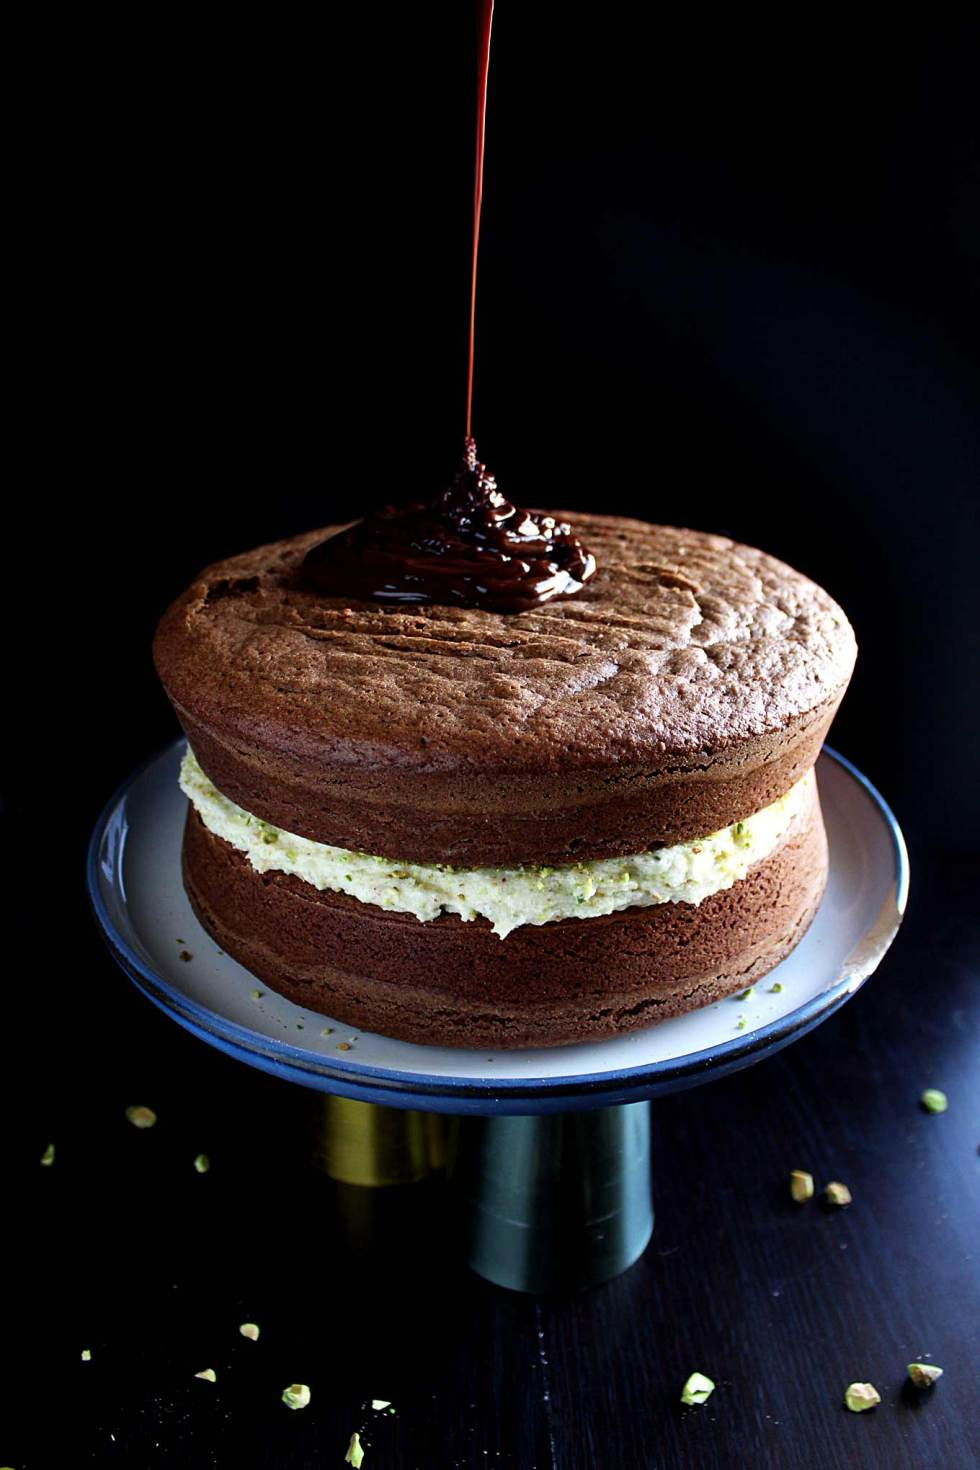 chocolate orange cake | pistachio mascarpone filling | chocolate ganache | fudgey cake | pistachio frosting